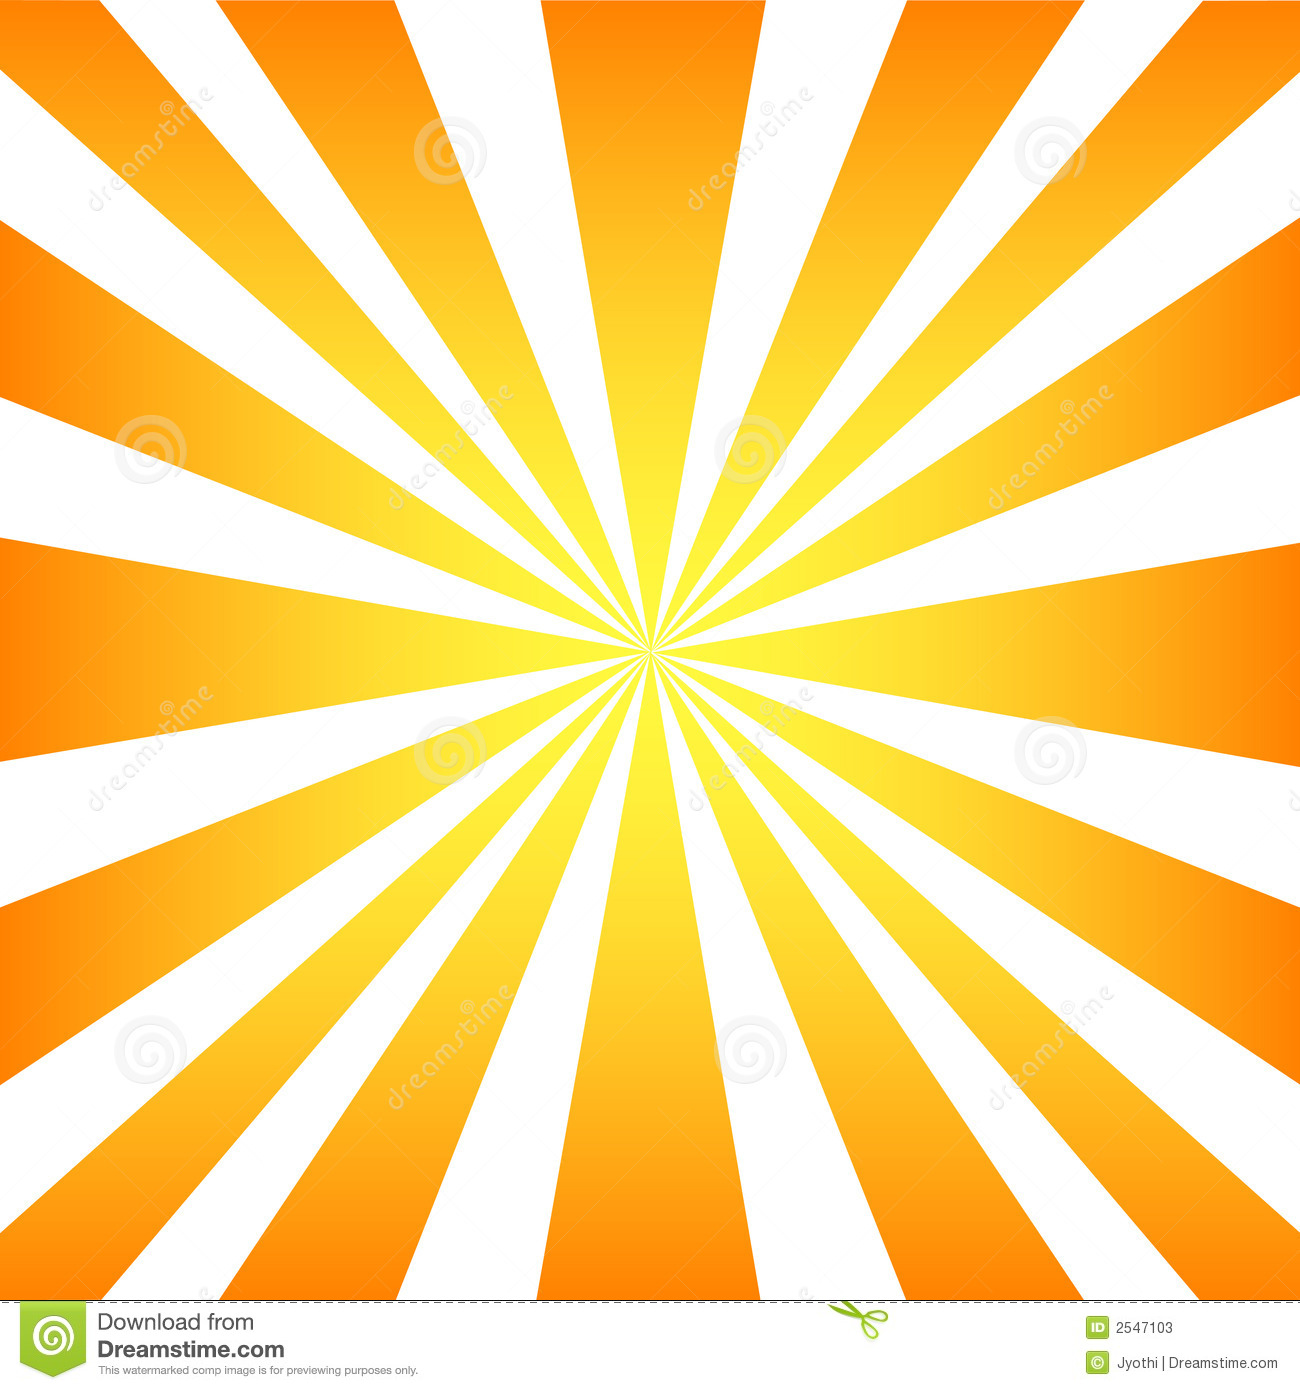 sun rays stock vector illustration of orange illustration 2547103